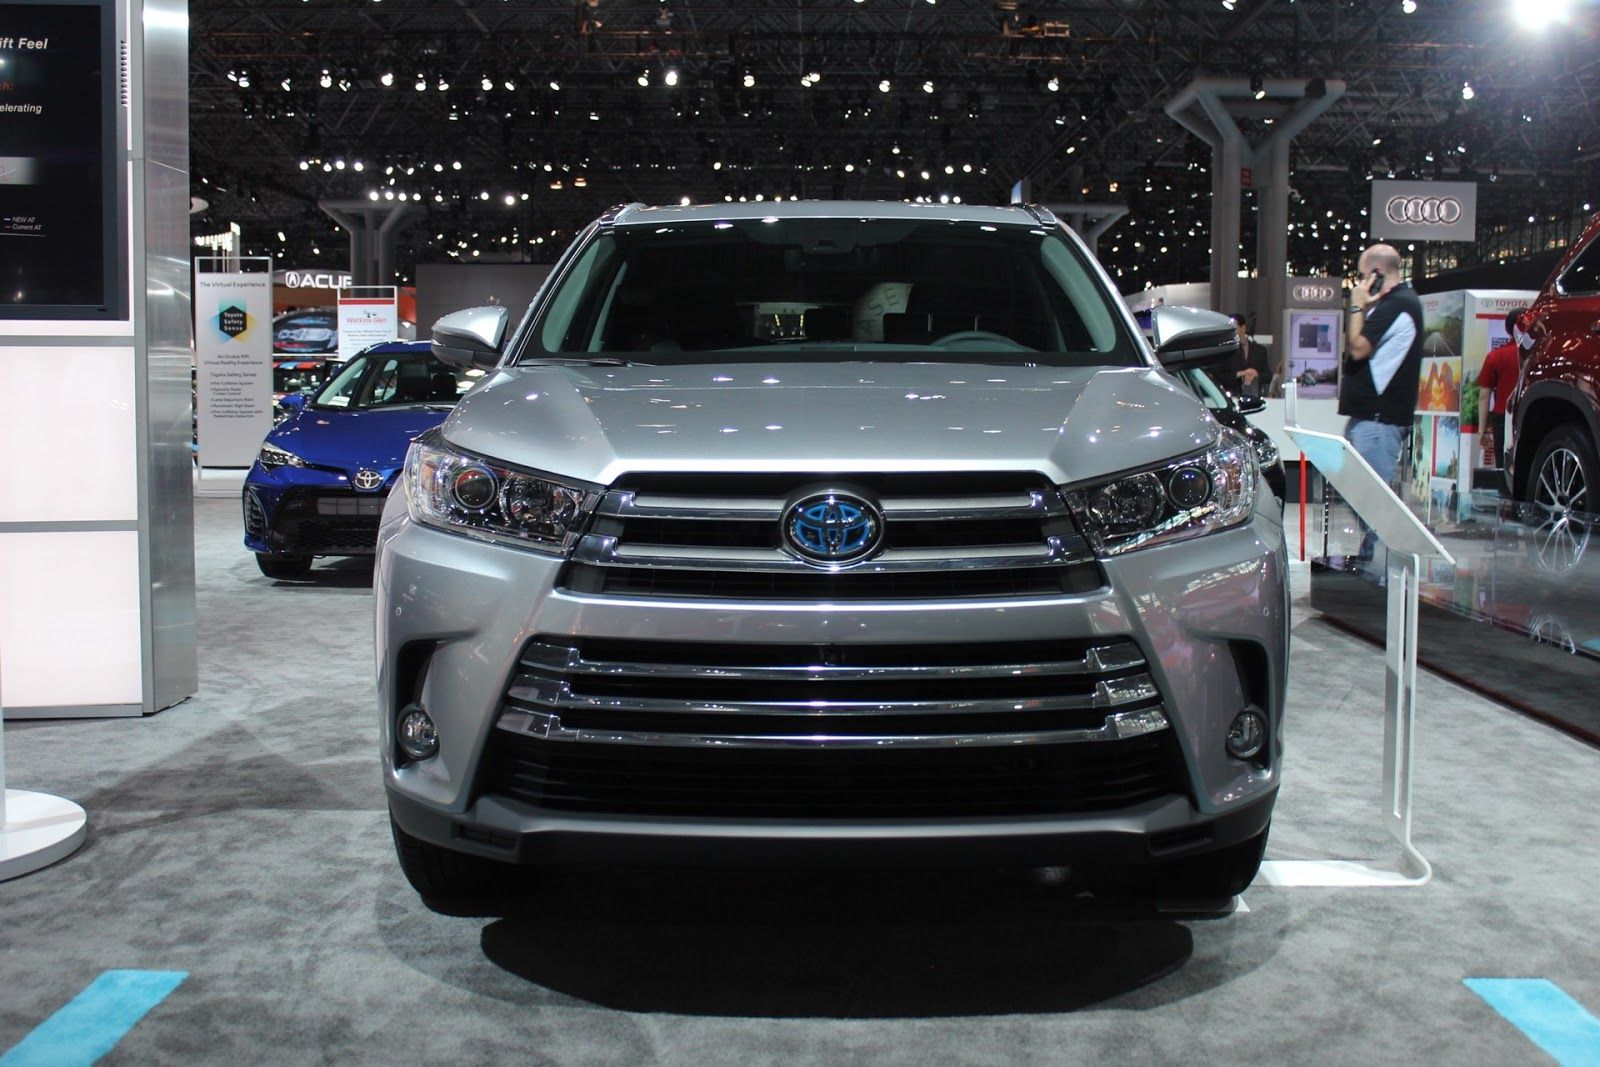 2018 toyota highlander 2018 toyota highlander changes 2018 toyota highlander colors 2018 toyota